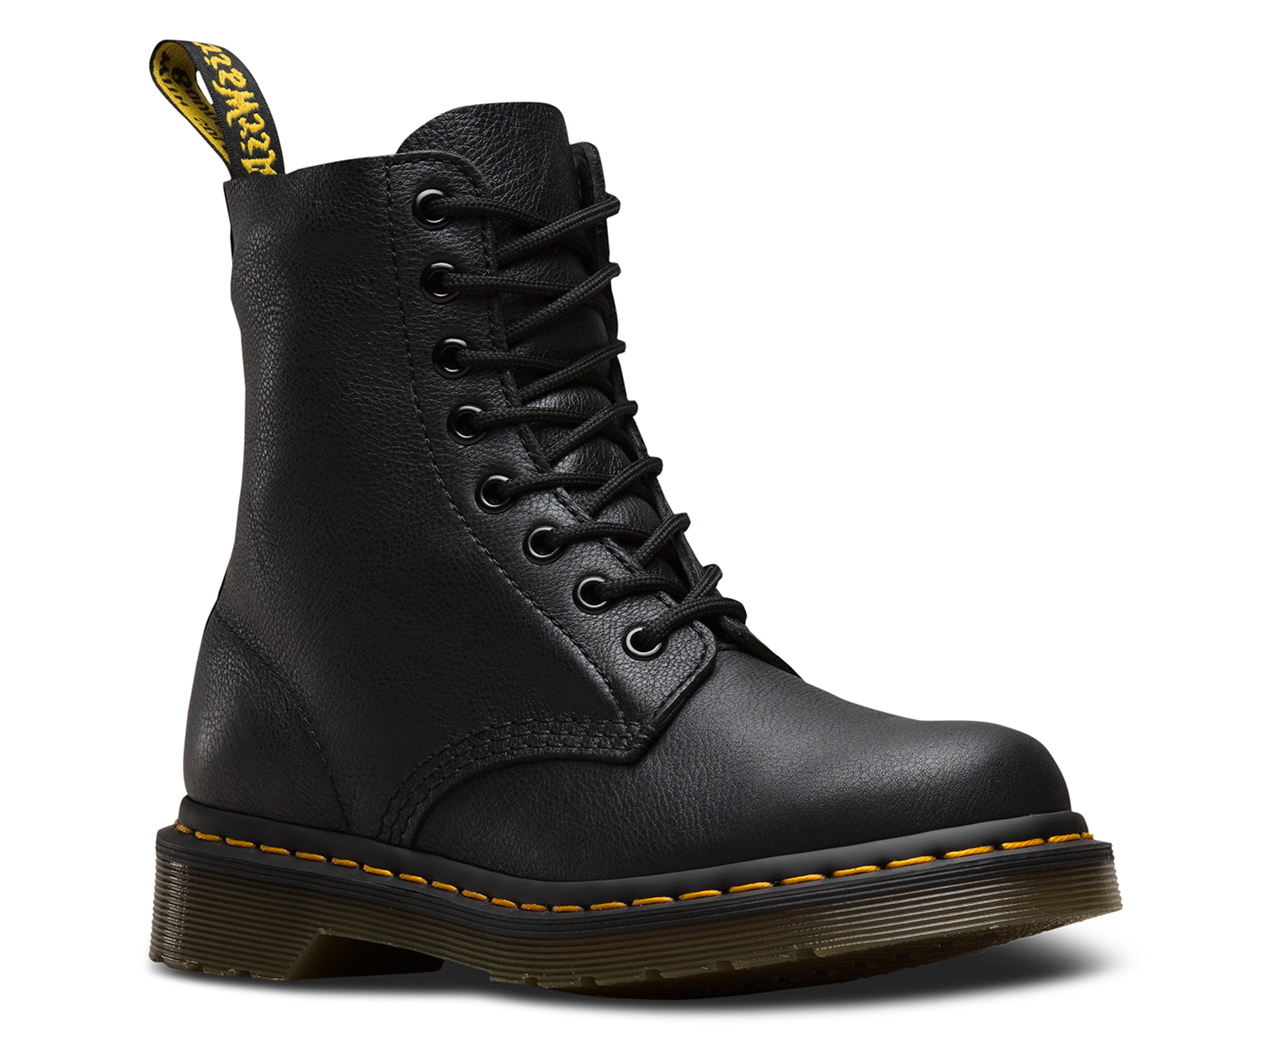 Dr. Martens 1460 PASCAL 8 EYE BOOT - Lace-up boots - dark brown virginia oQ3BuiXtQ